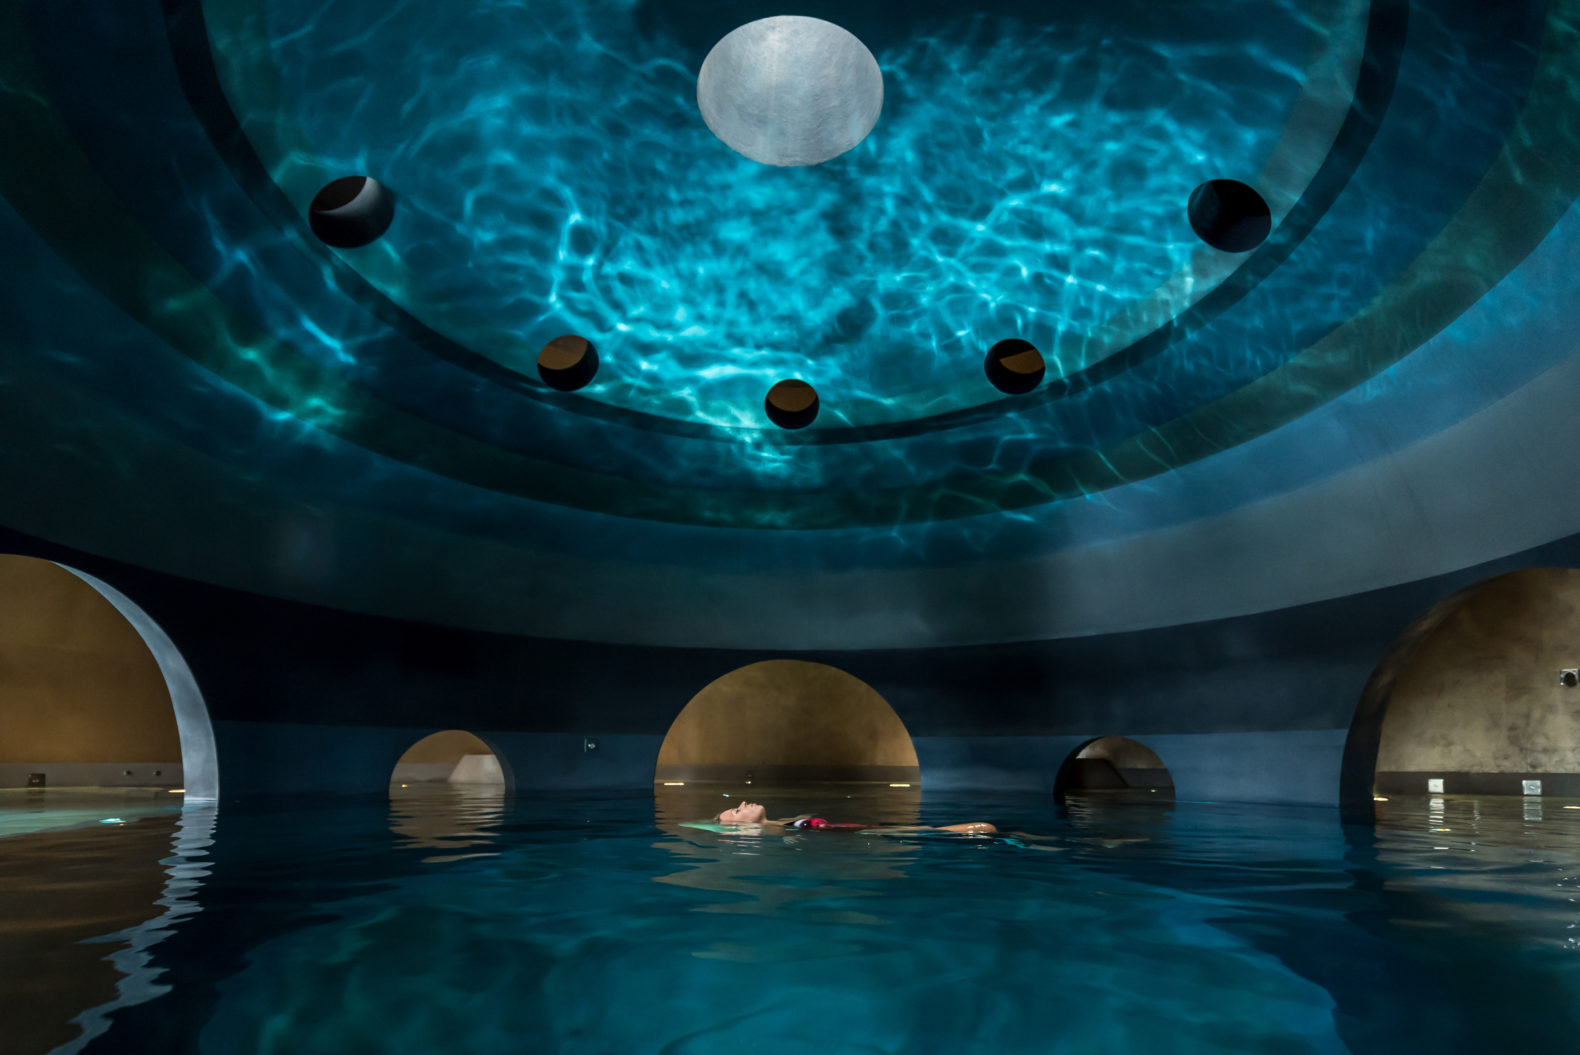 indoor-floating-pool-light-swimming-healing-experience-euphoria-retreat-greece